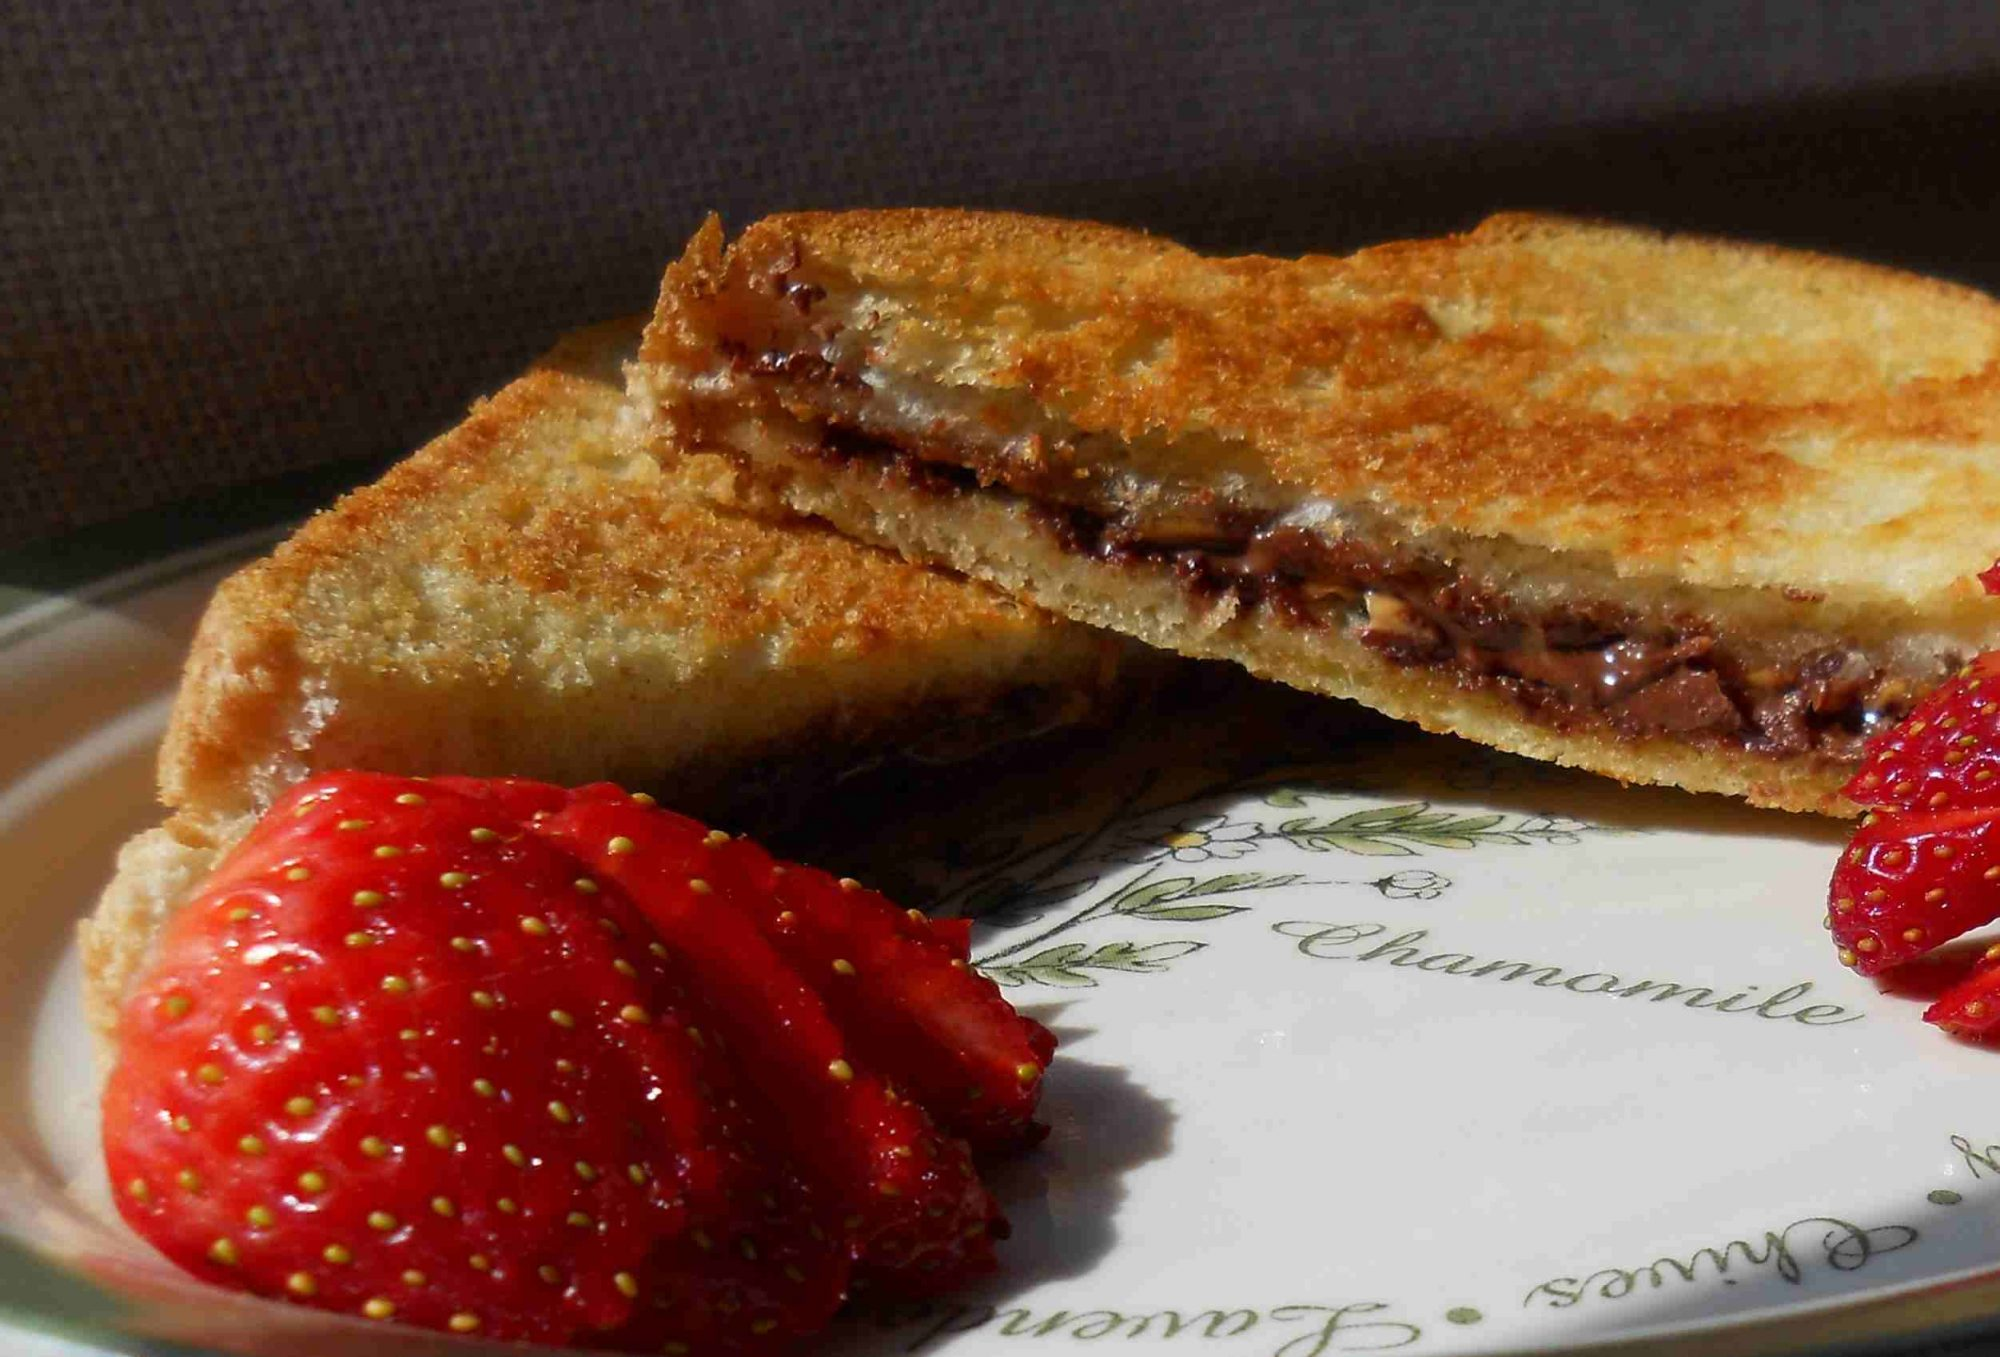 Peanut Butter and Chocolate Panini